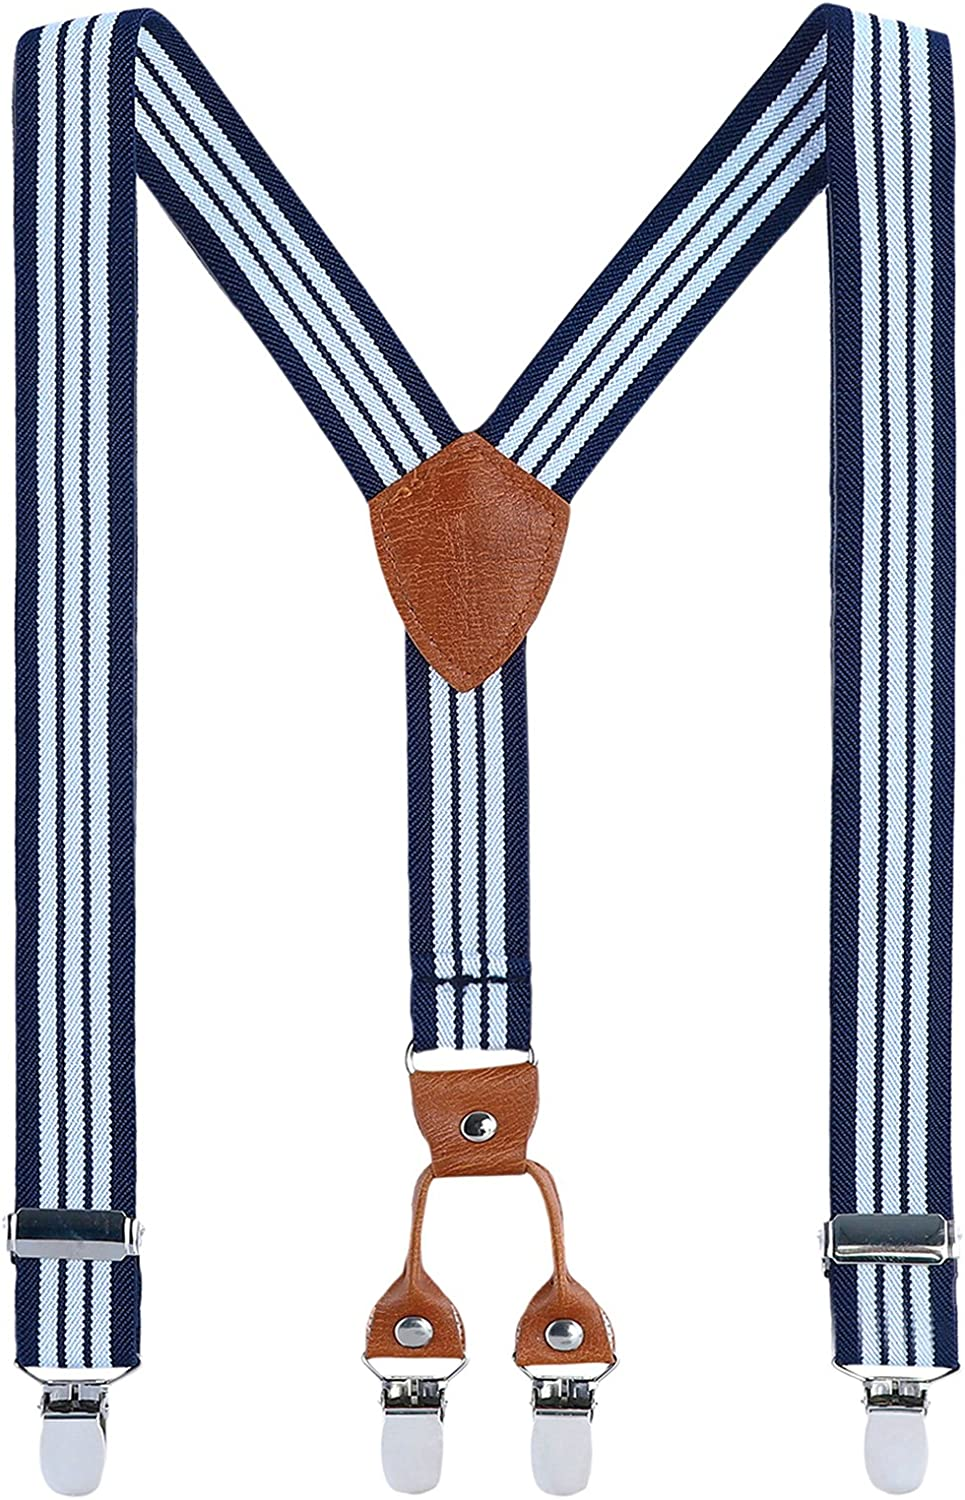 Grain Leather Elasticated Adjustable with 4 Clips Y shape Suspender Children Braces Clip on Suspenders